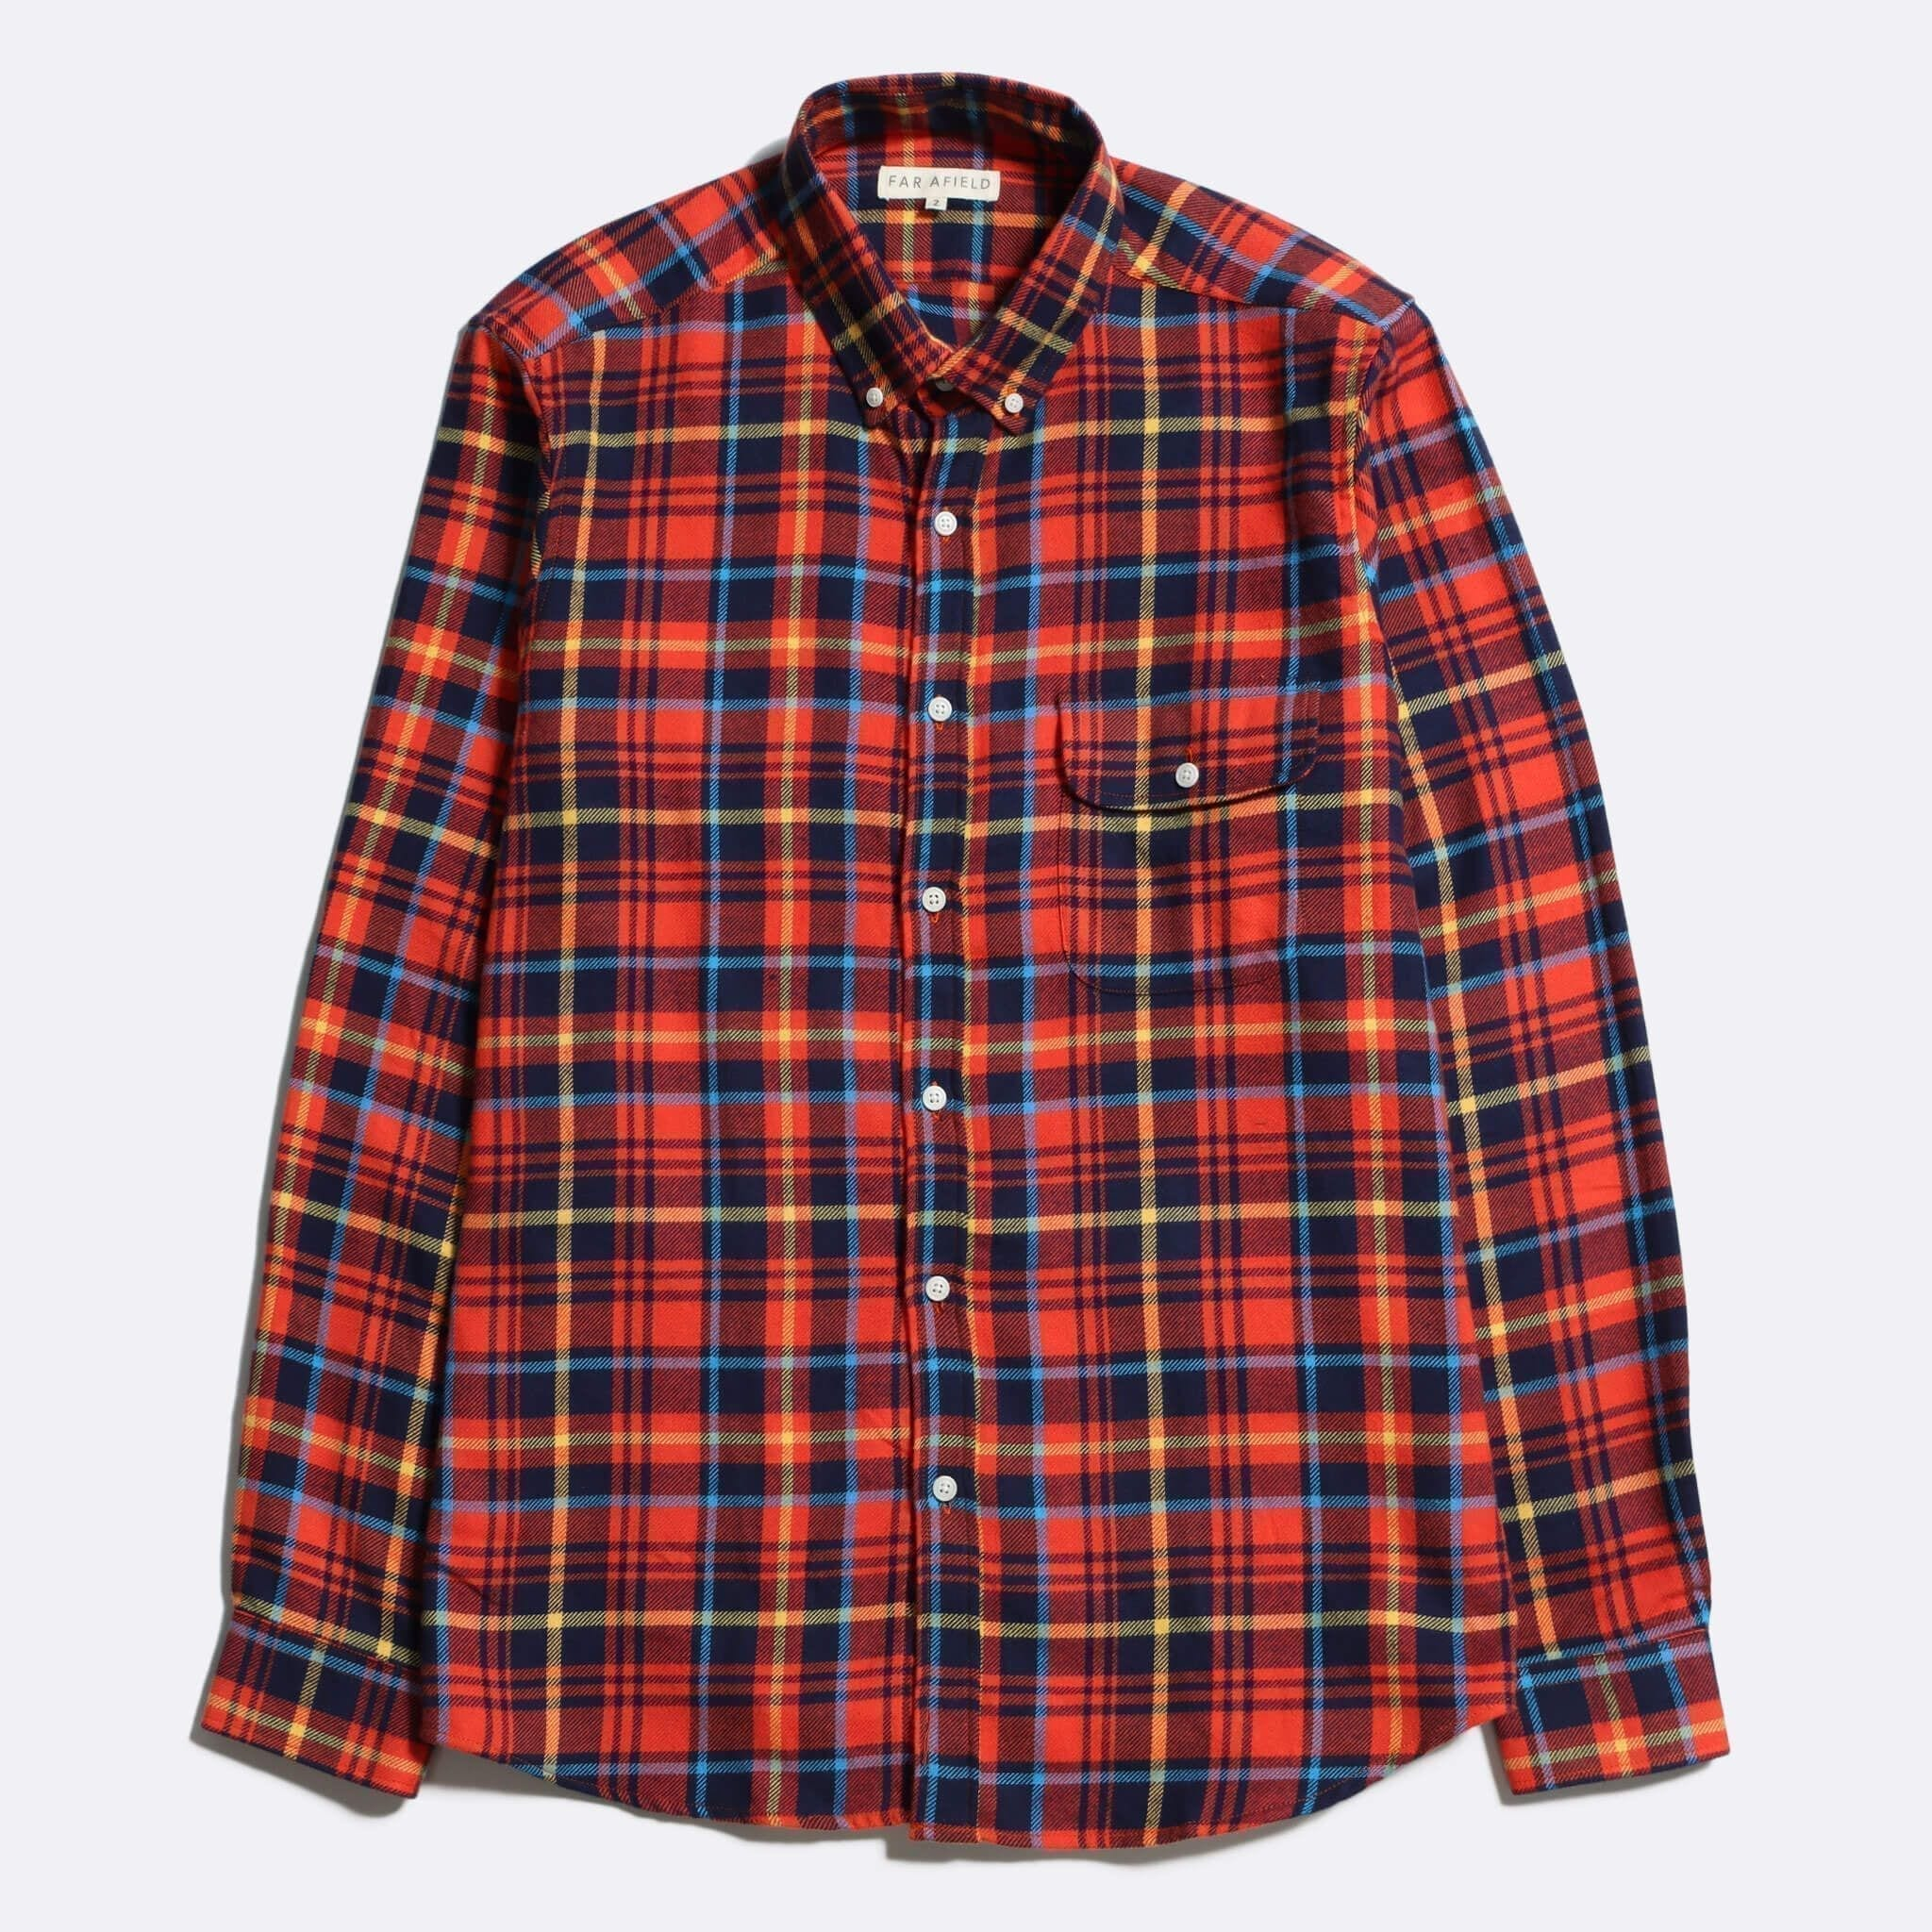 Far Afield Larry Long Sleeve Shirt a Red Check Cotton Flannel/Up-Cycled Fabric Work Lumberjack Check Casual